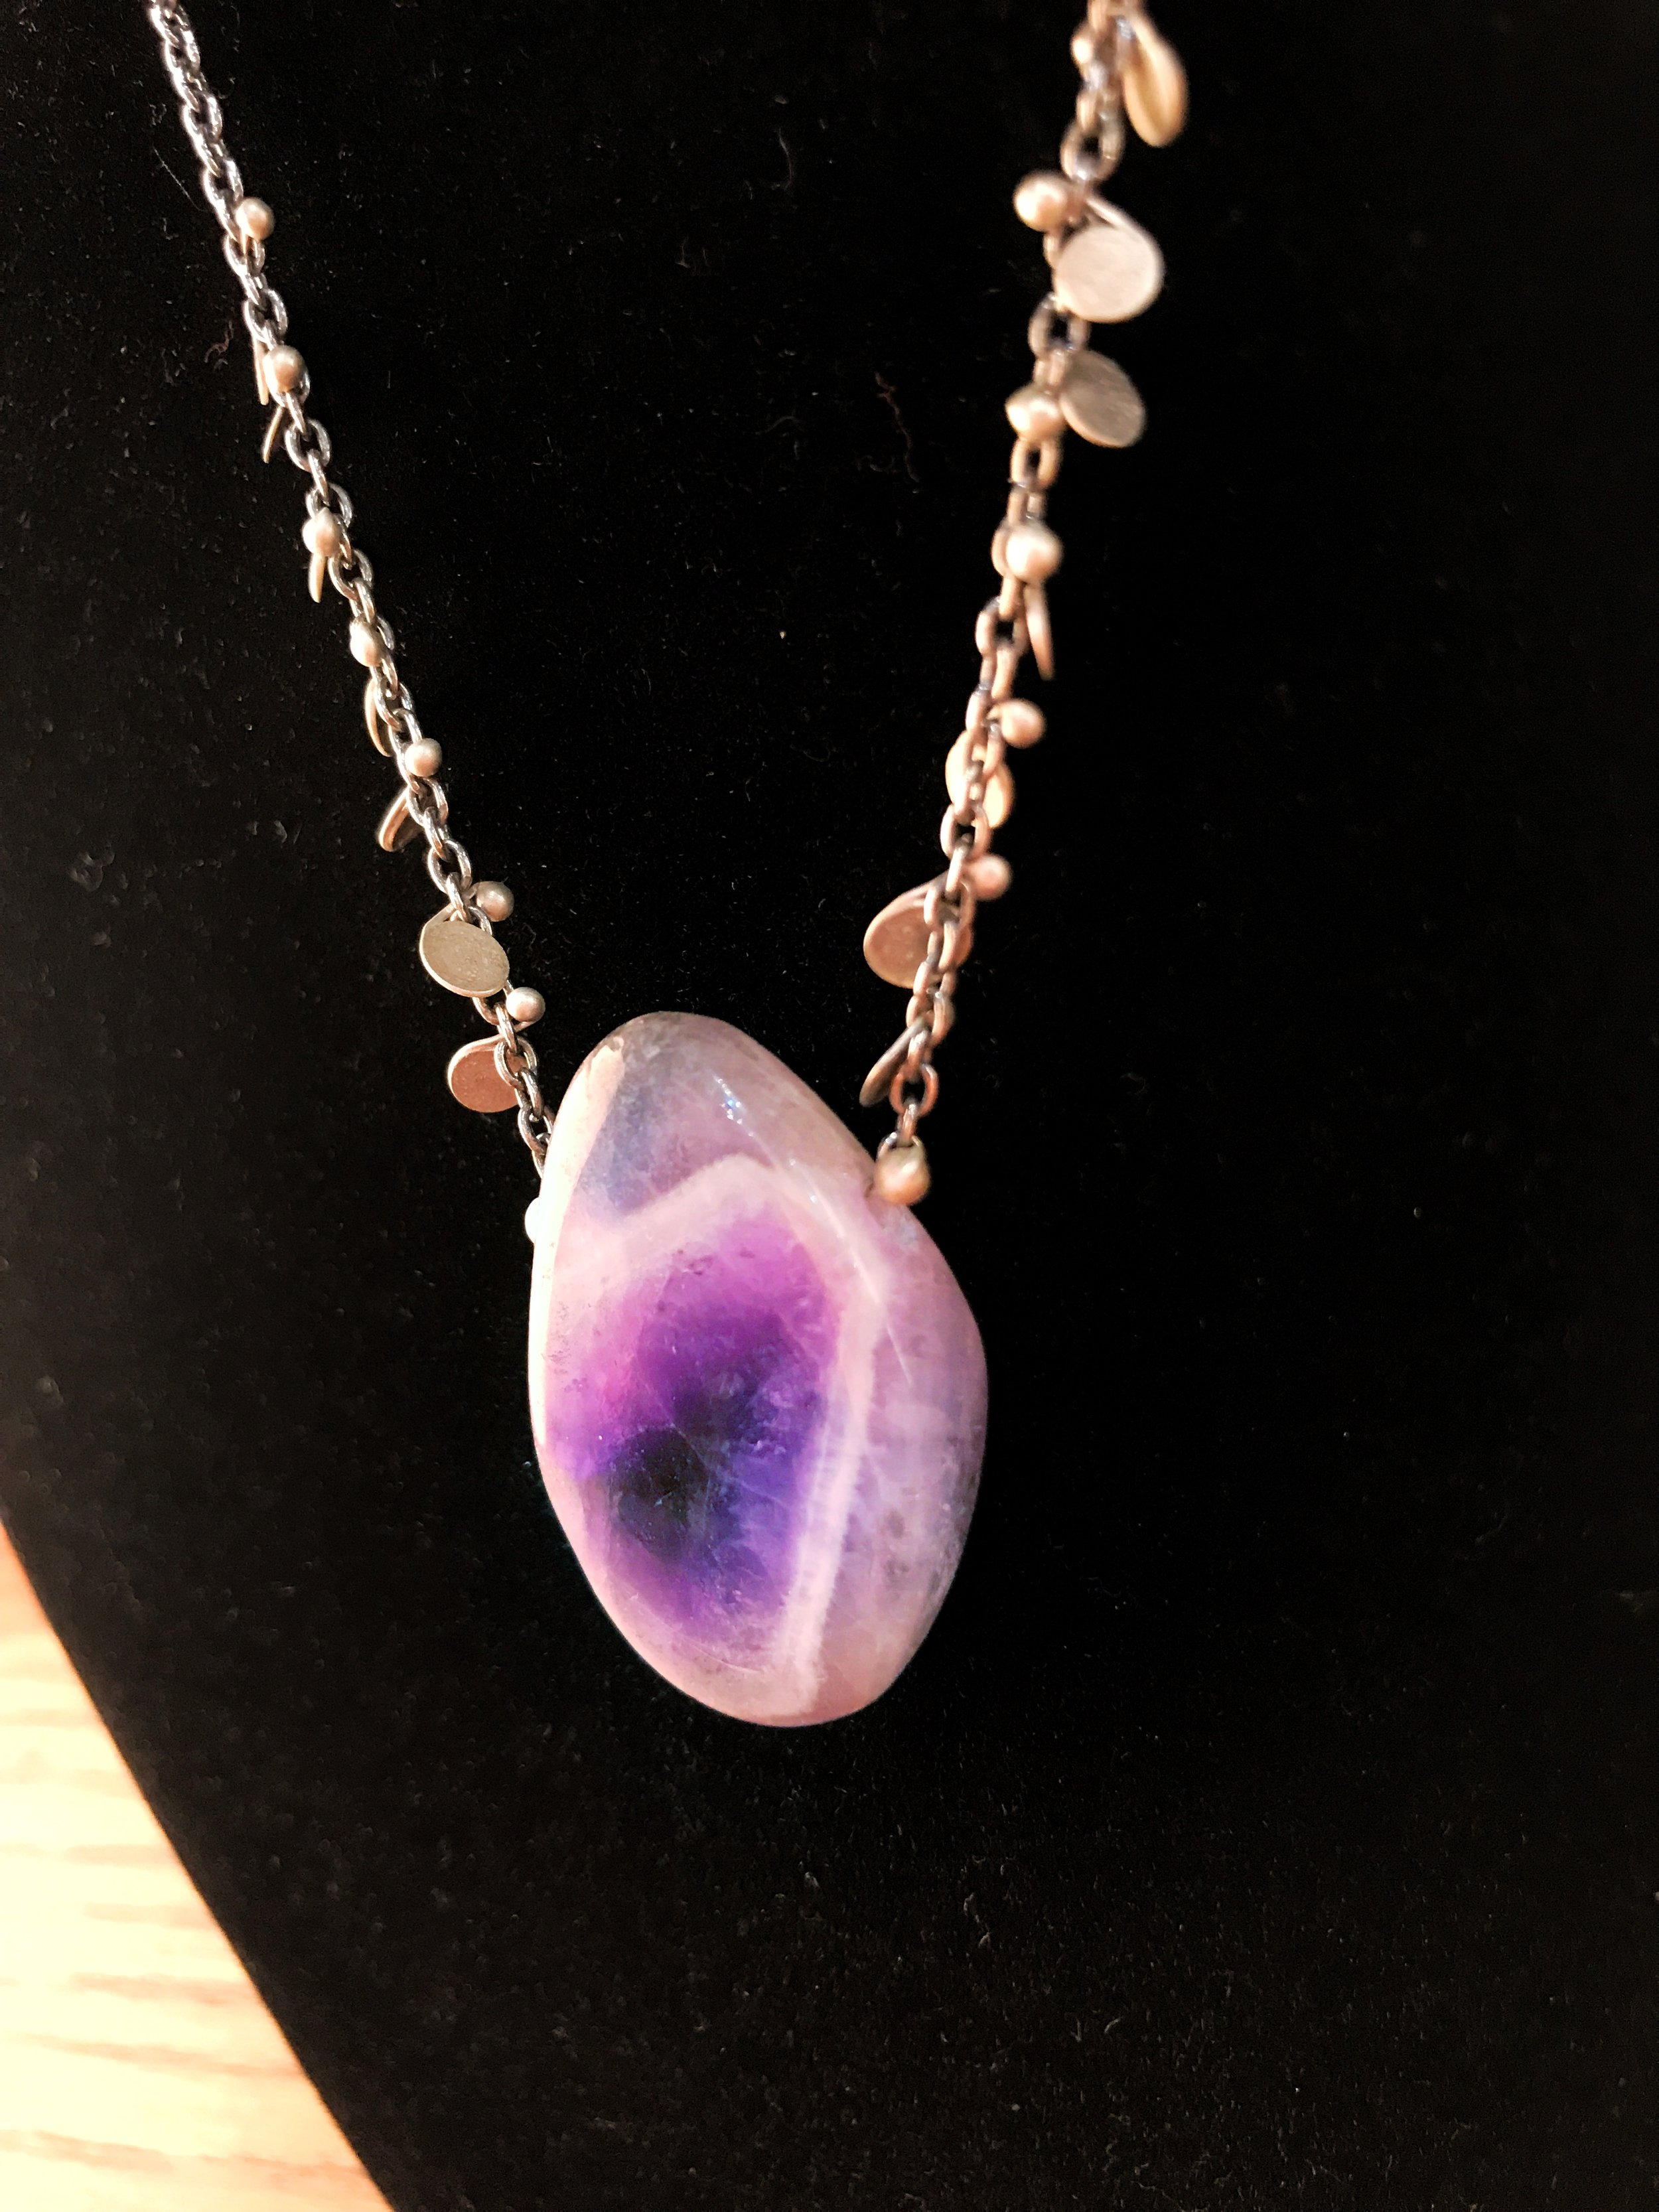 Purple agate necklace, $58.50 (regularly $78)